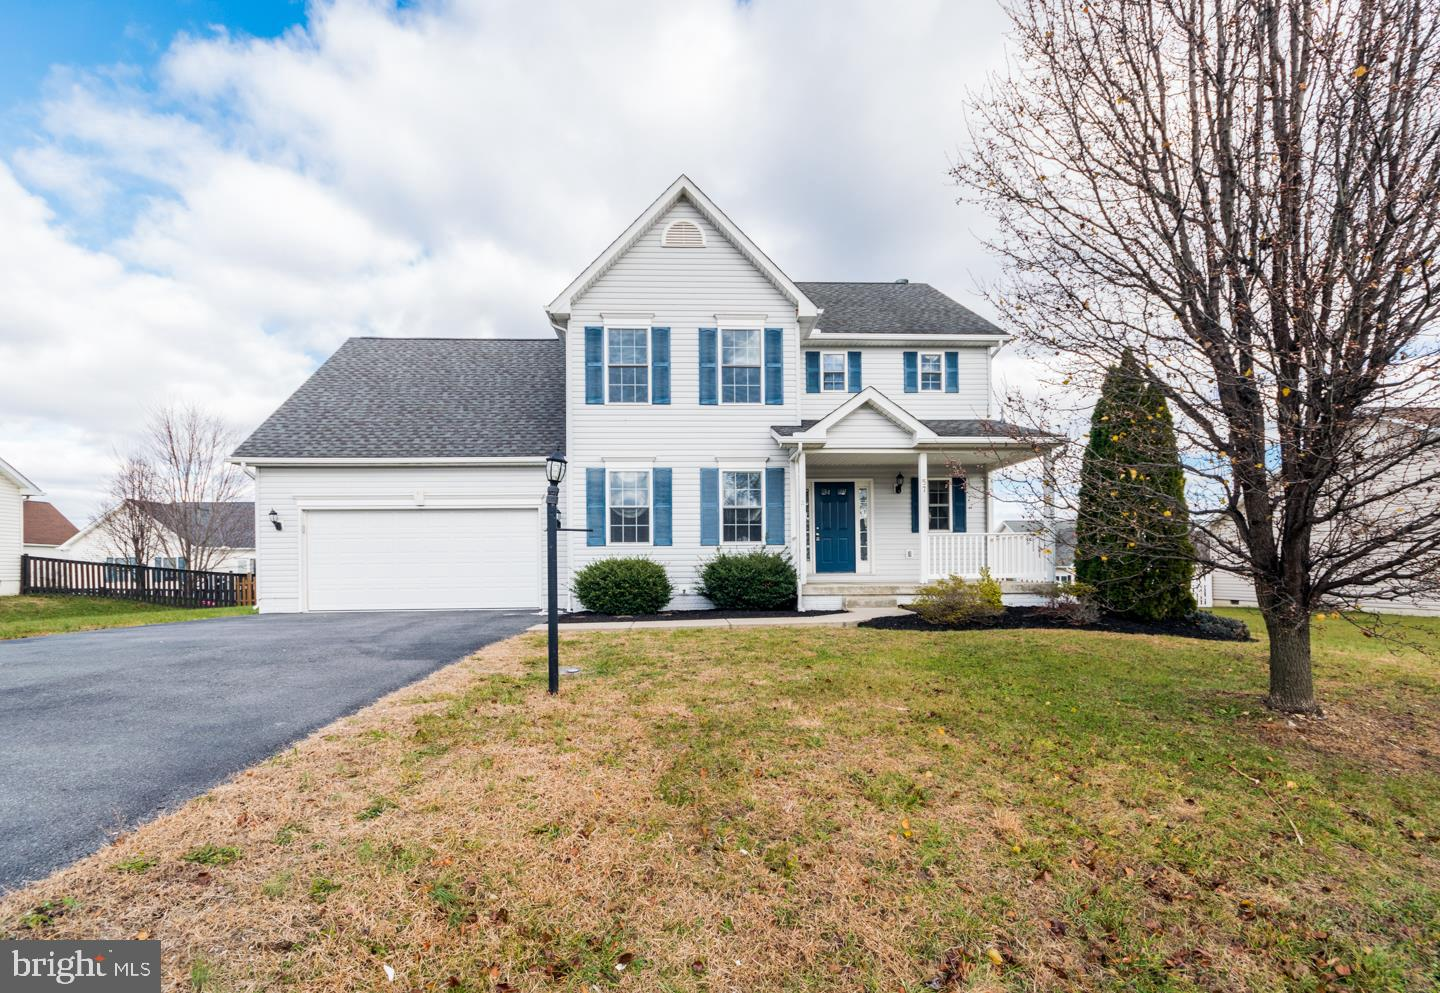 Perfect home just remodeled in the hammonds mill community. 4 bedrooms on the upper level including